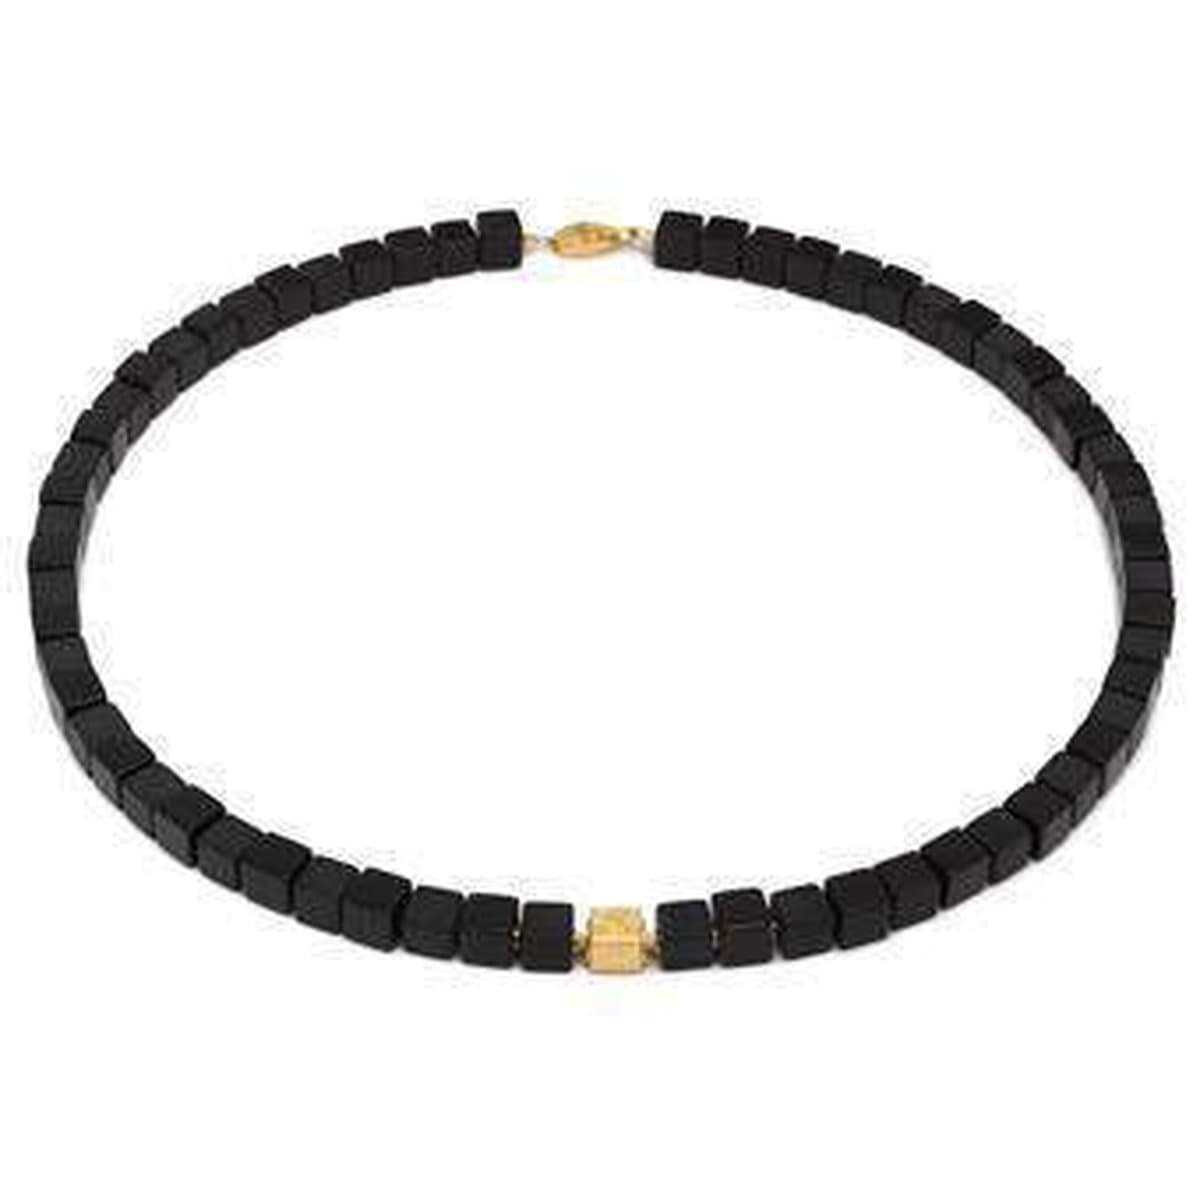 Mapo Onyx Necklace - 84484896-Bernd Wolf-Renee Taylor Gallery